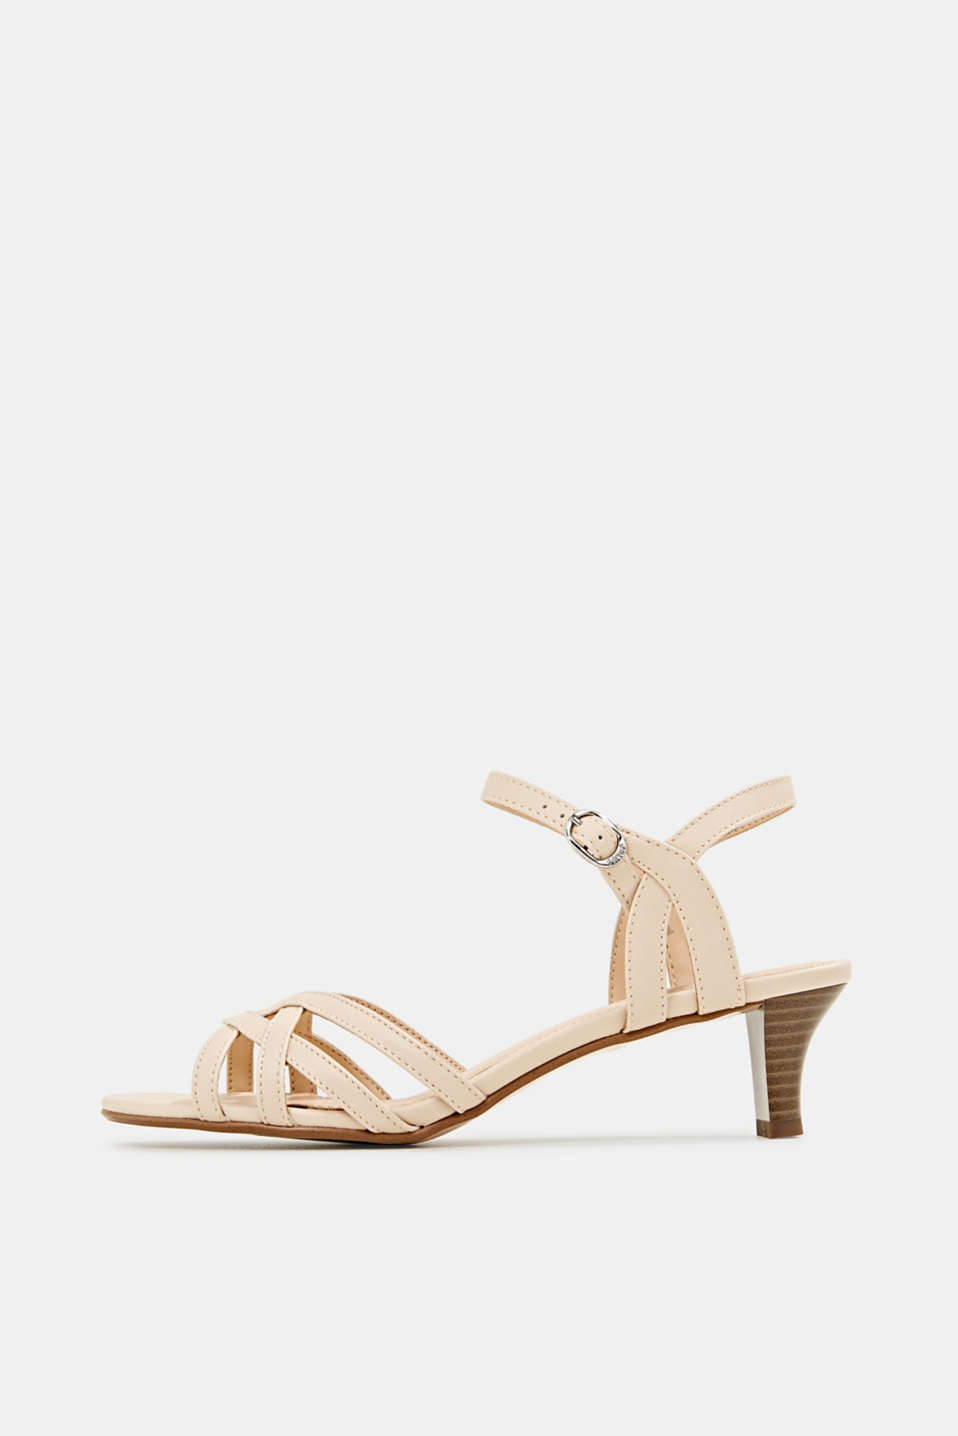 Sandals with straps in a braided look, SAND, detail image number 0